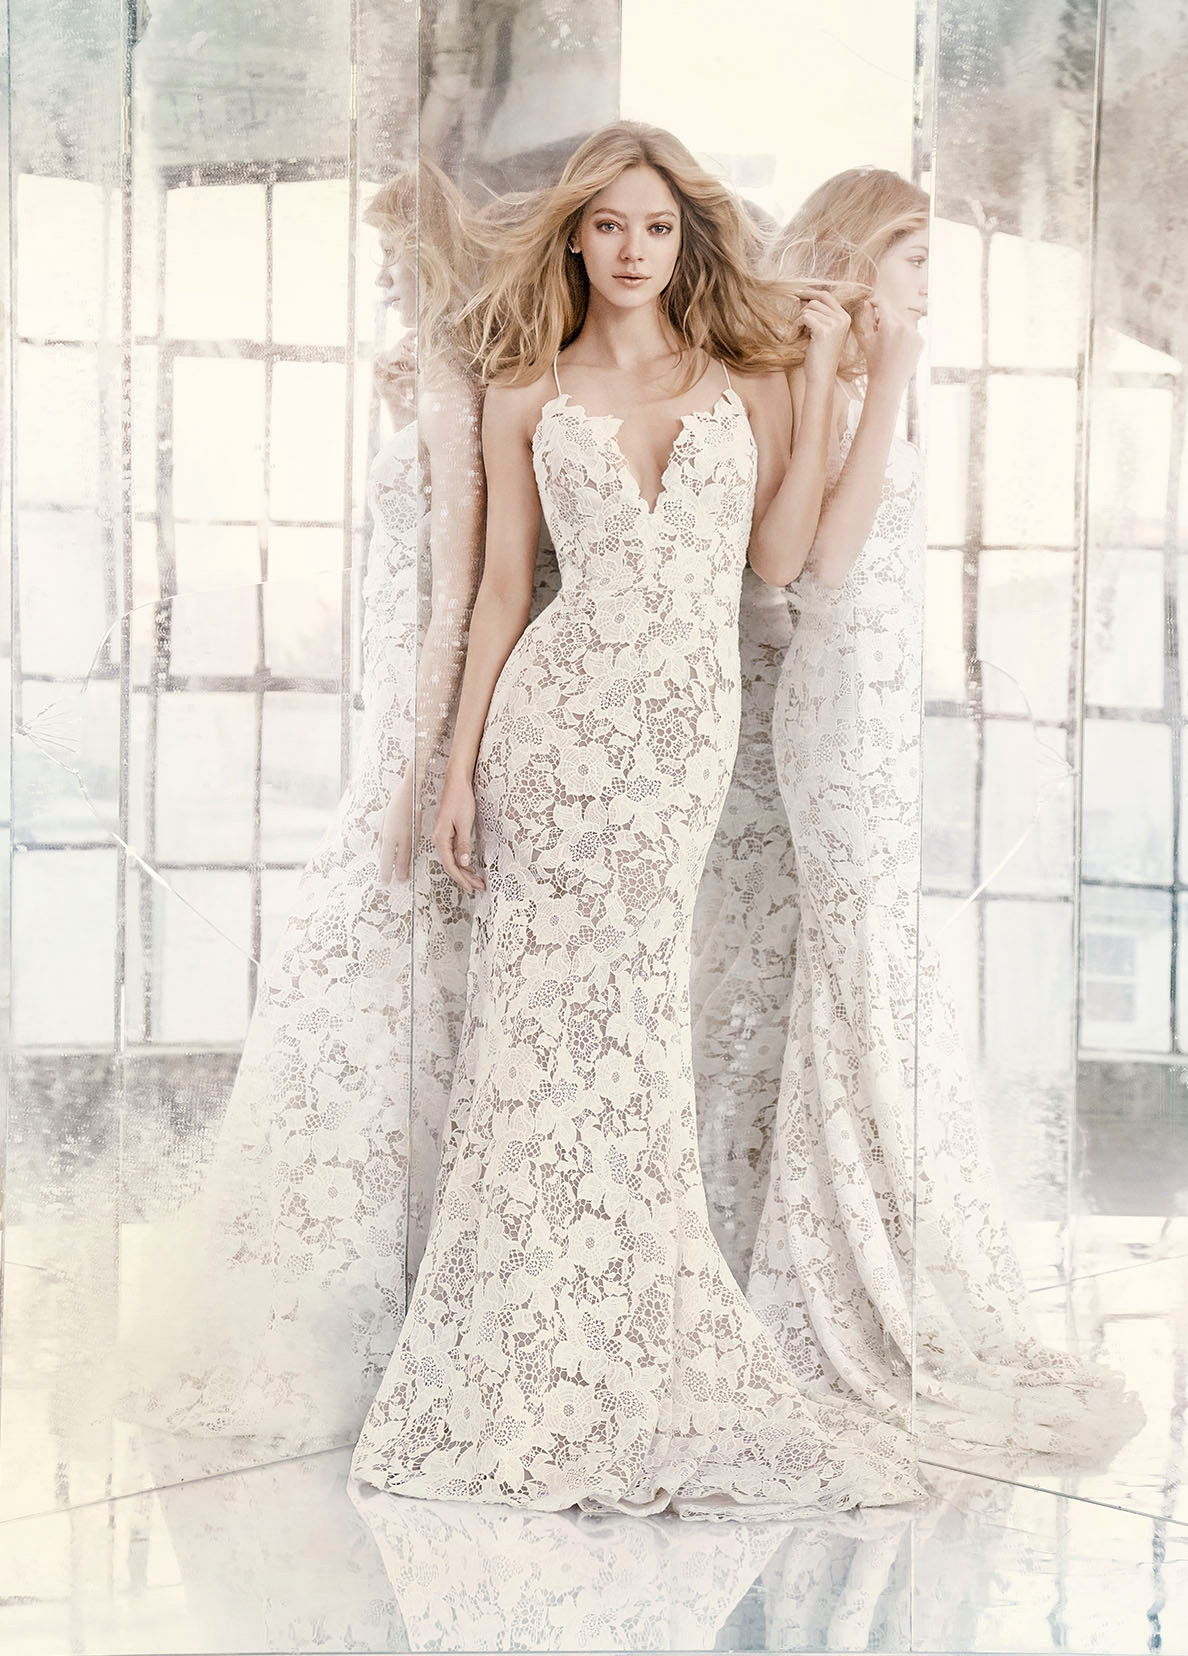 Bridal gowns and wedding dresses by jlm couture style 6606 for Www jjshouse com wedding dresses